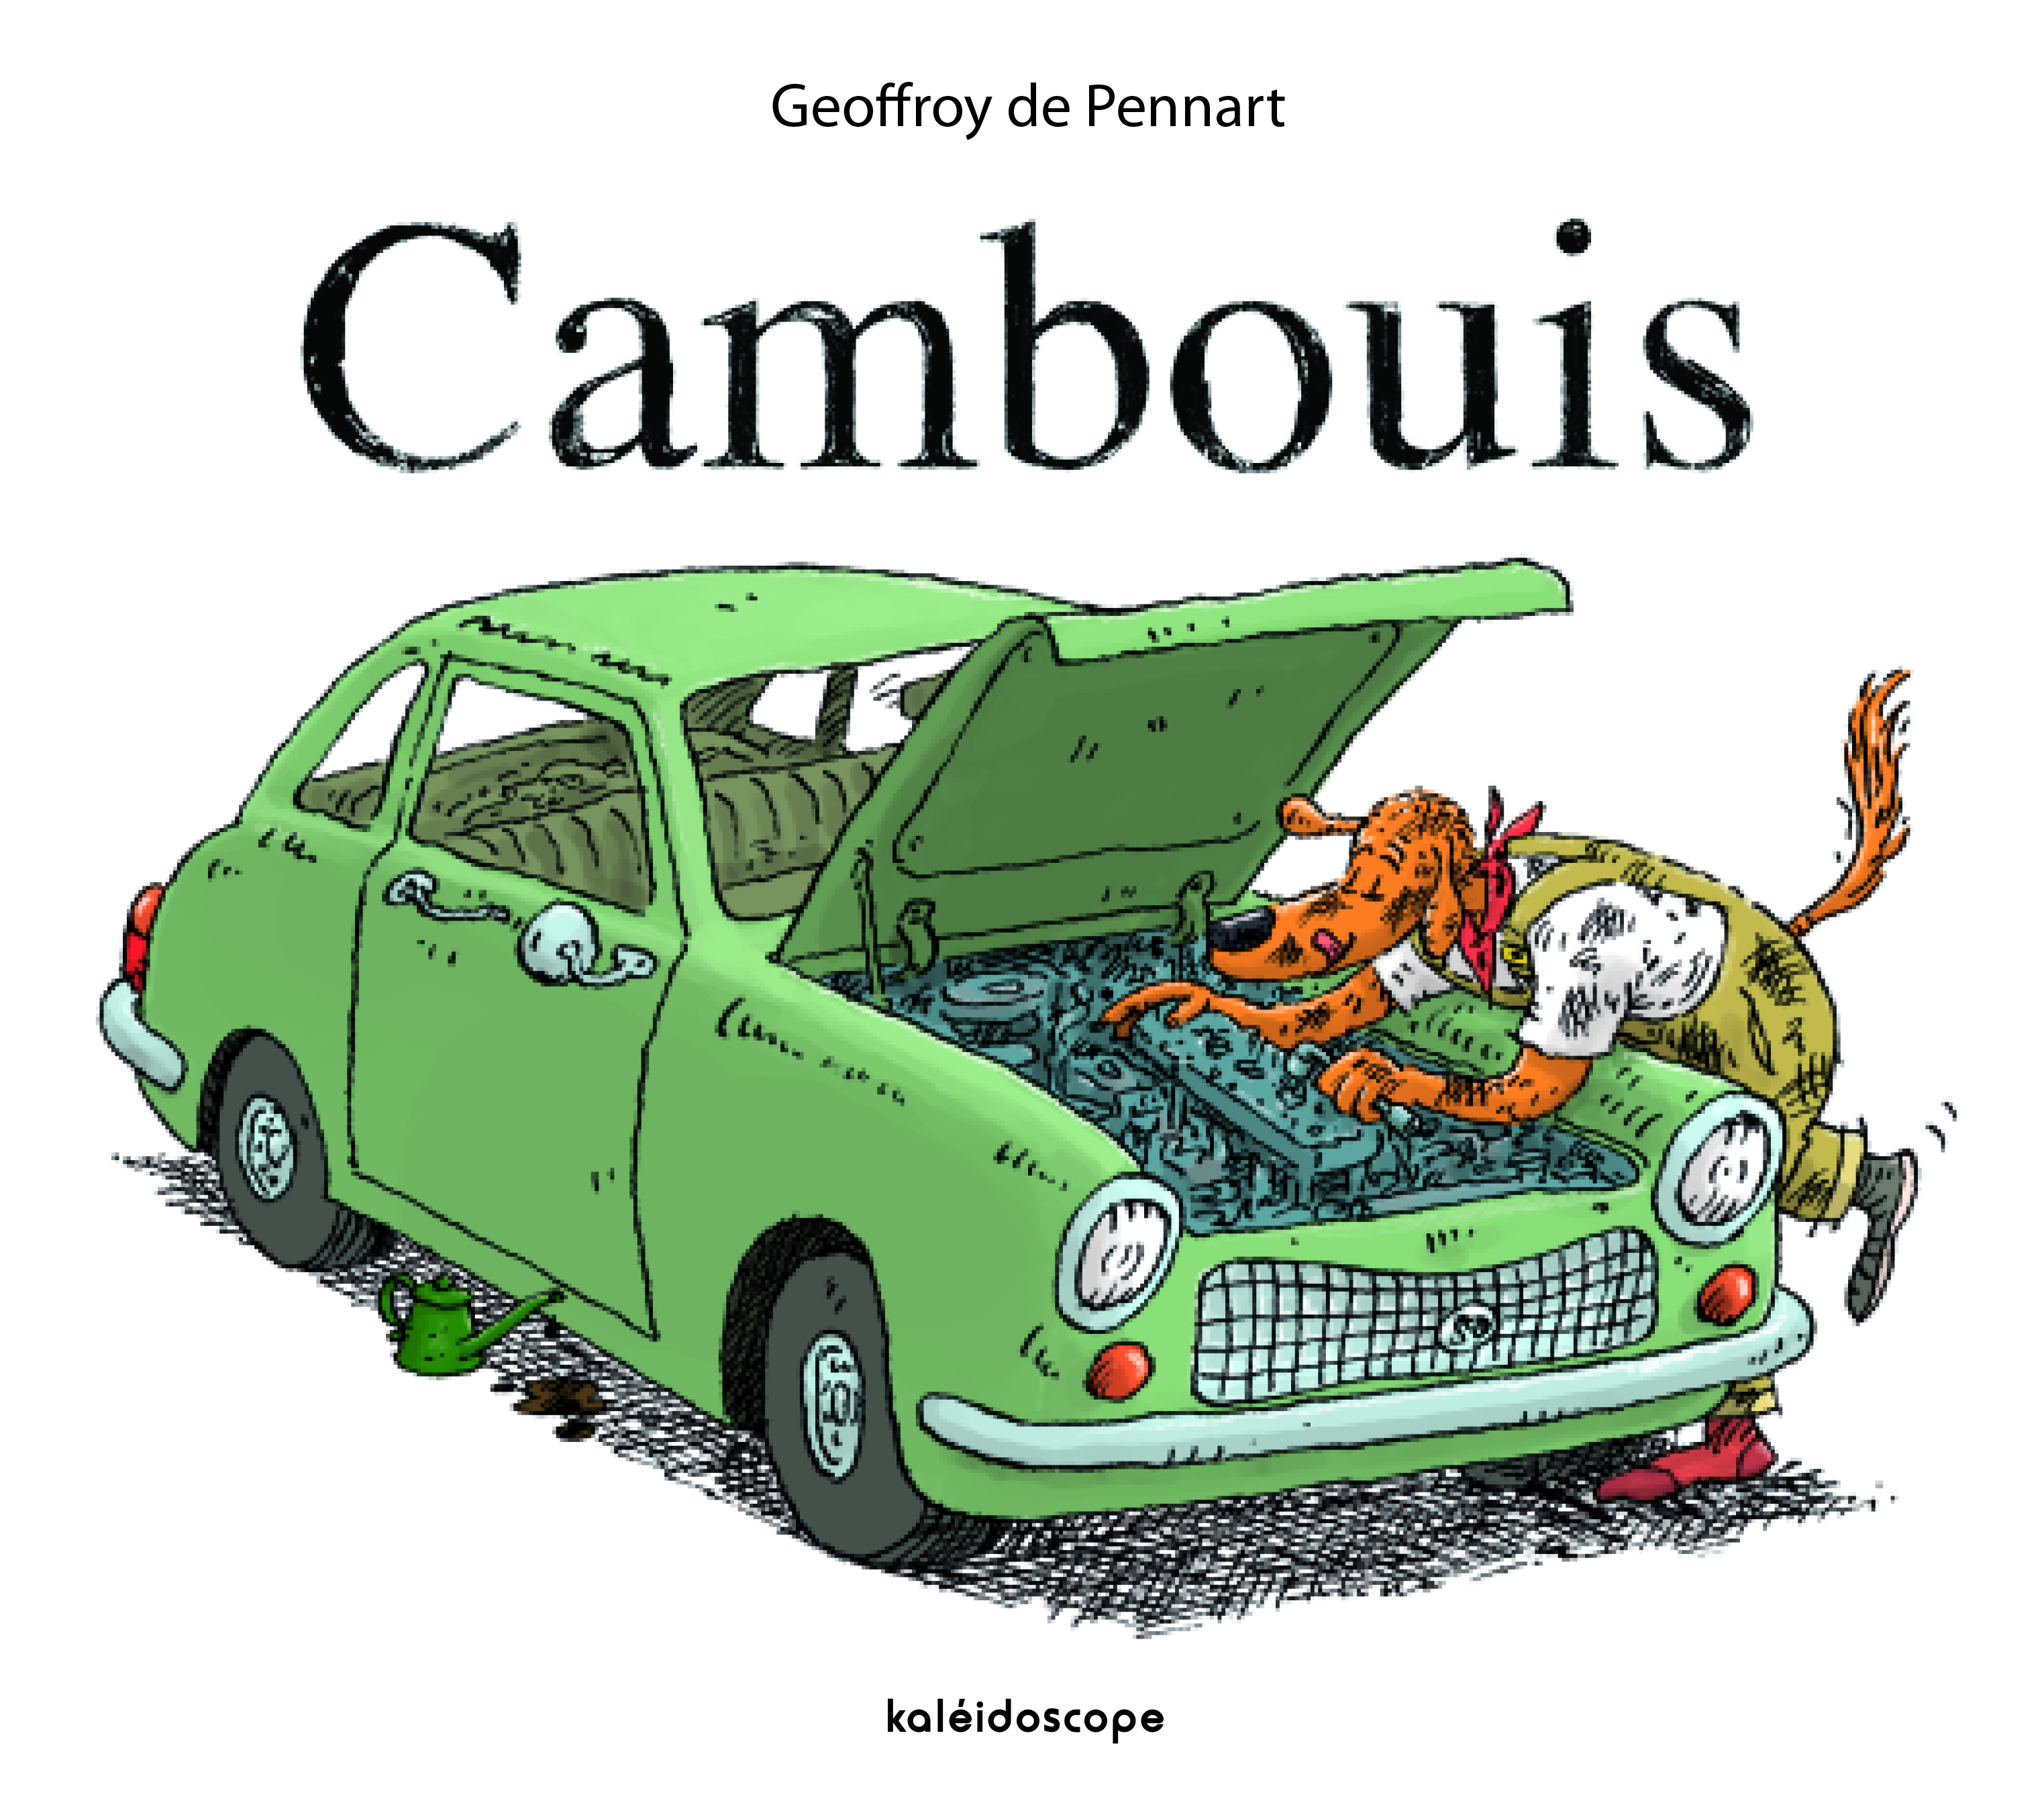 CAMBOUIS